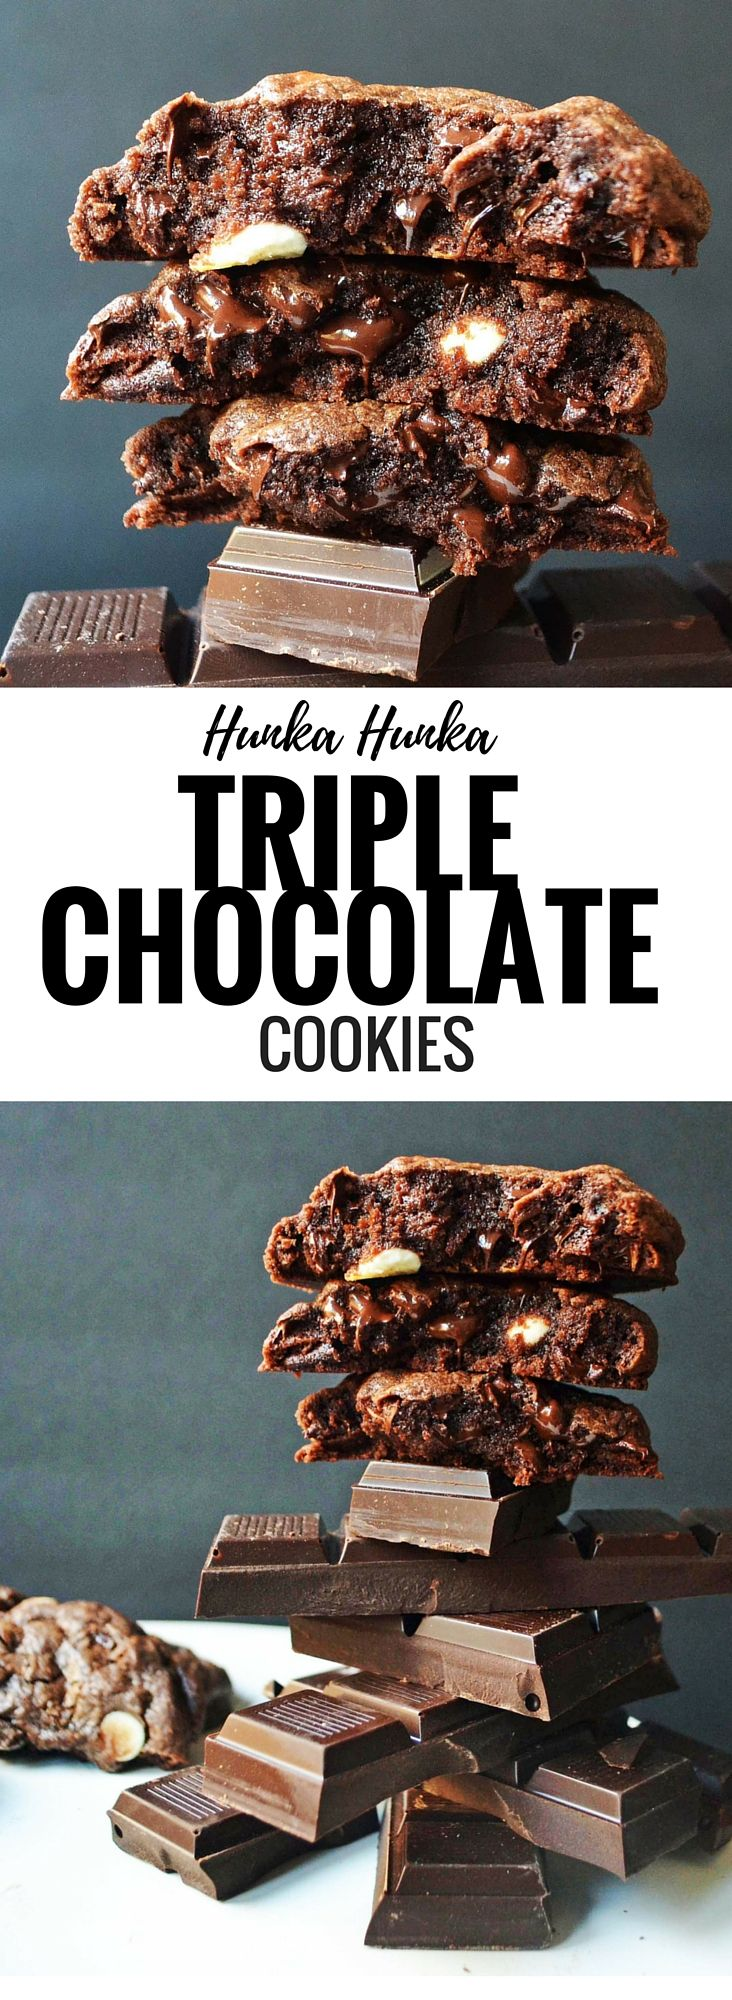 Triple Chocolate Chunk Cookies filled with high quality cocoa, semi-sweet chocolate chips, and white chocolate chips. Best triple chocolate cookie recipe ever.